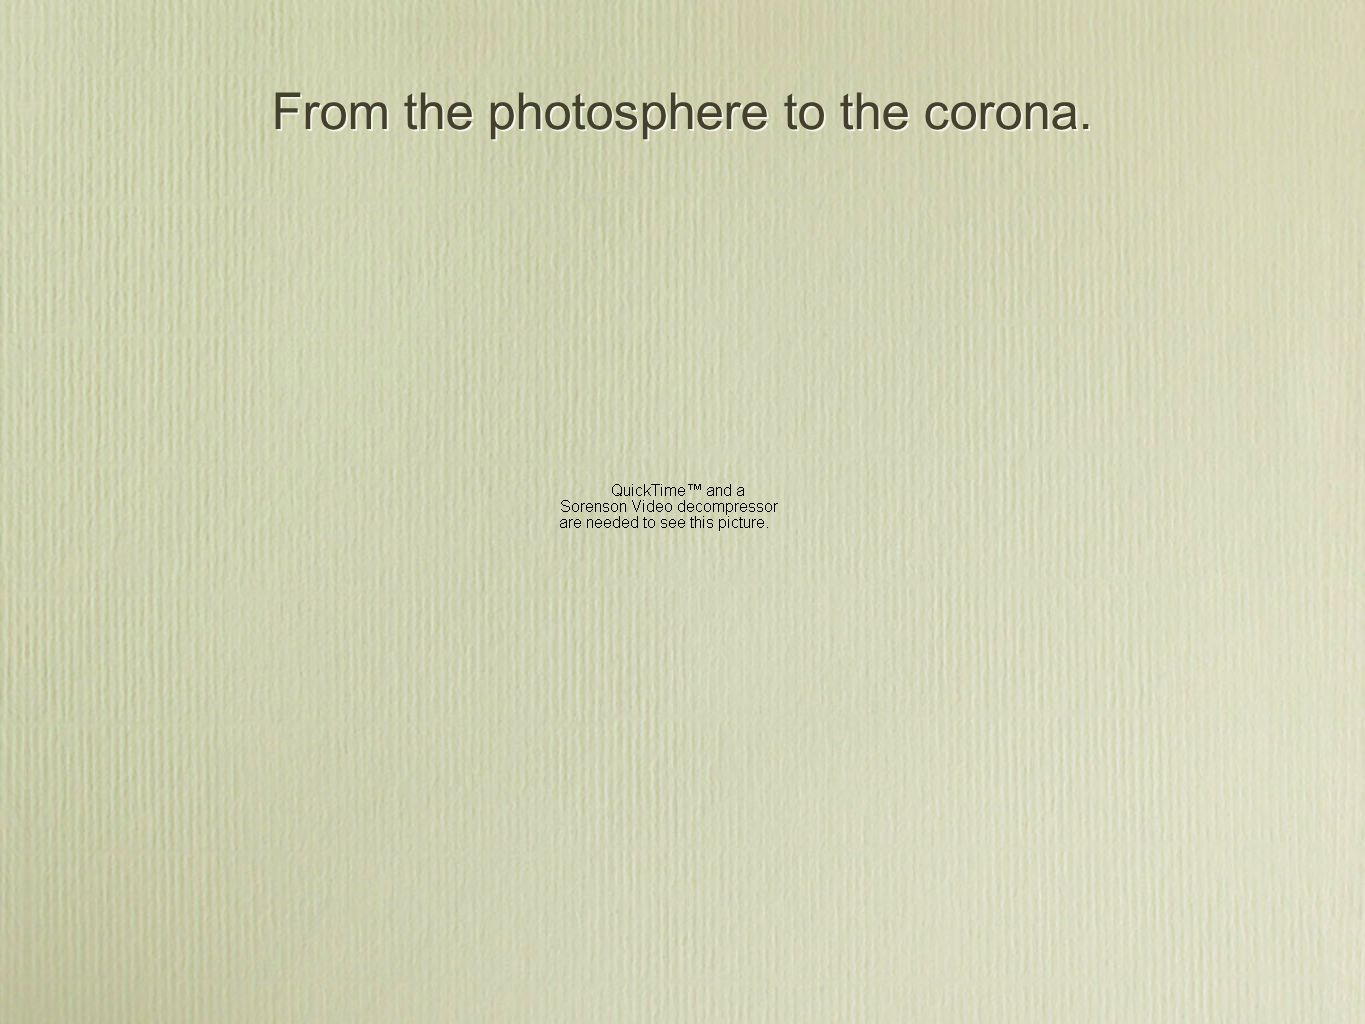 From the photosphere to the corona.